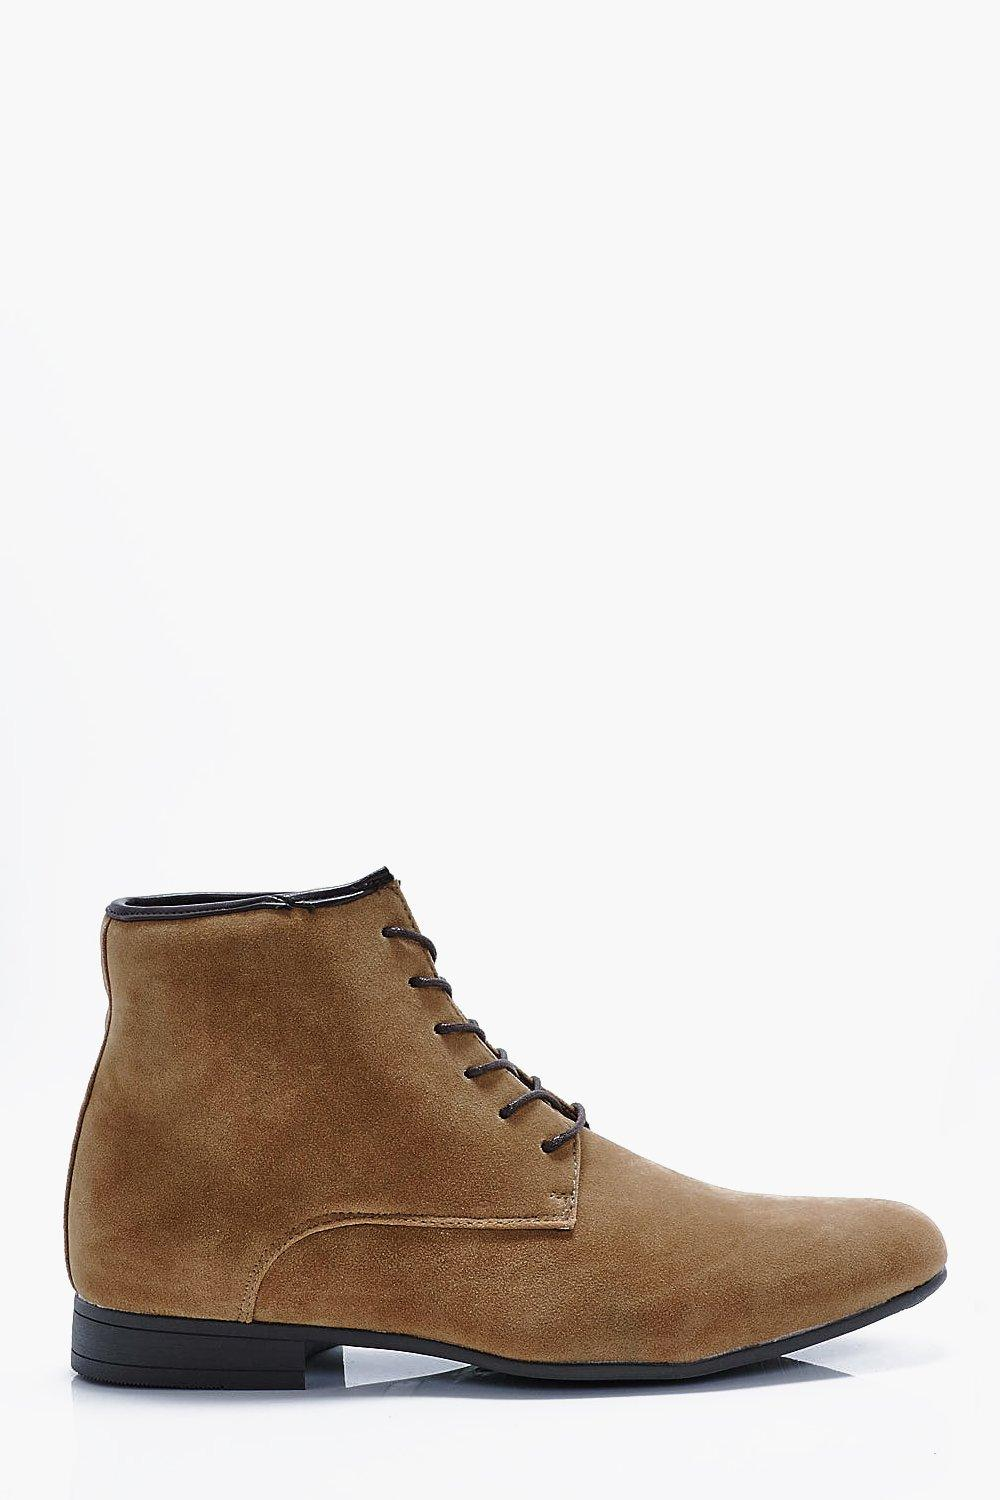 faux suede lace up boots by boohooman \u2014 threadsorry, this item has just gone out of stock our stylists will find you something similar if you sign up for thread thread is an online personal styling